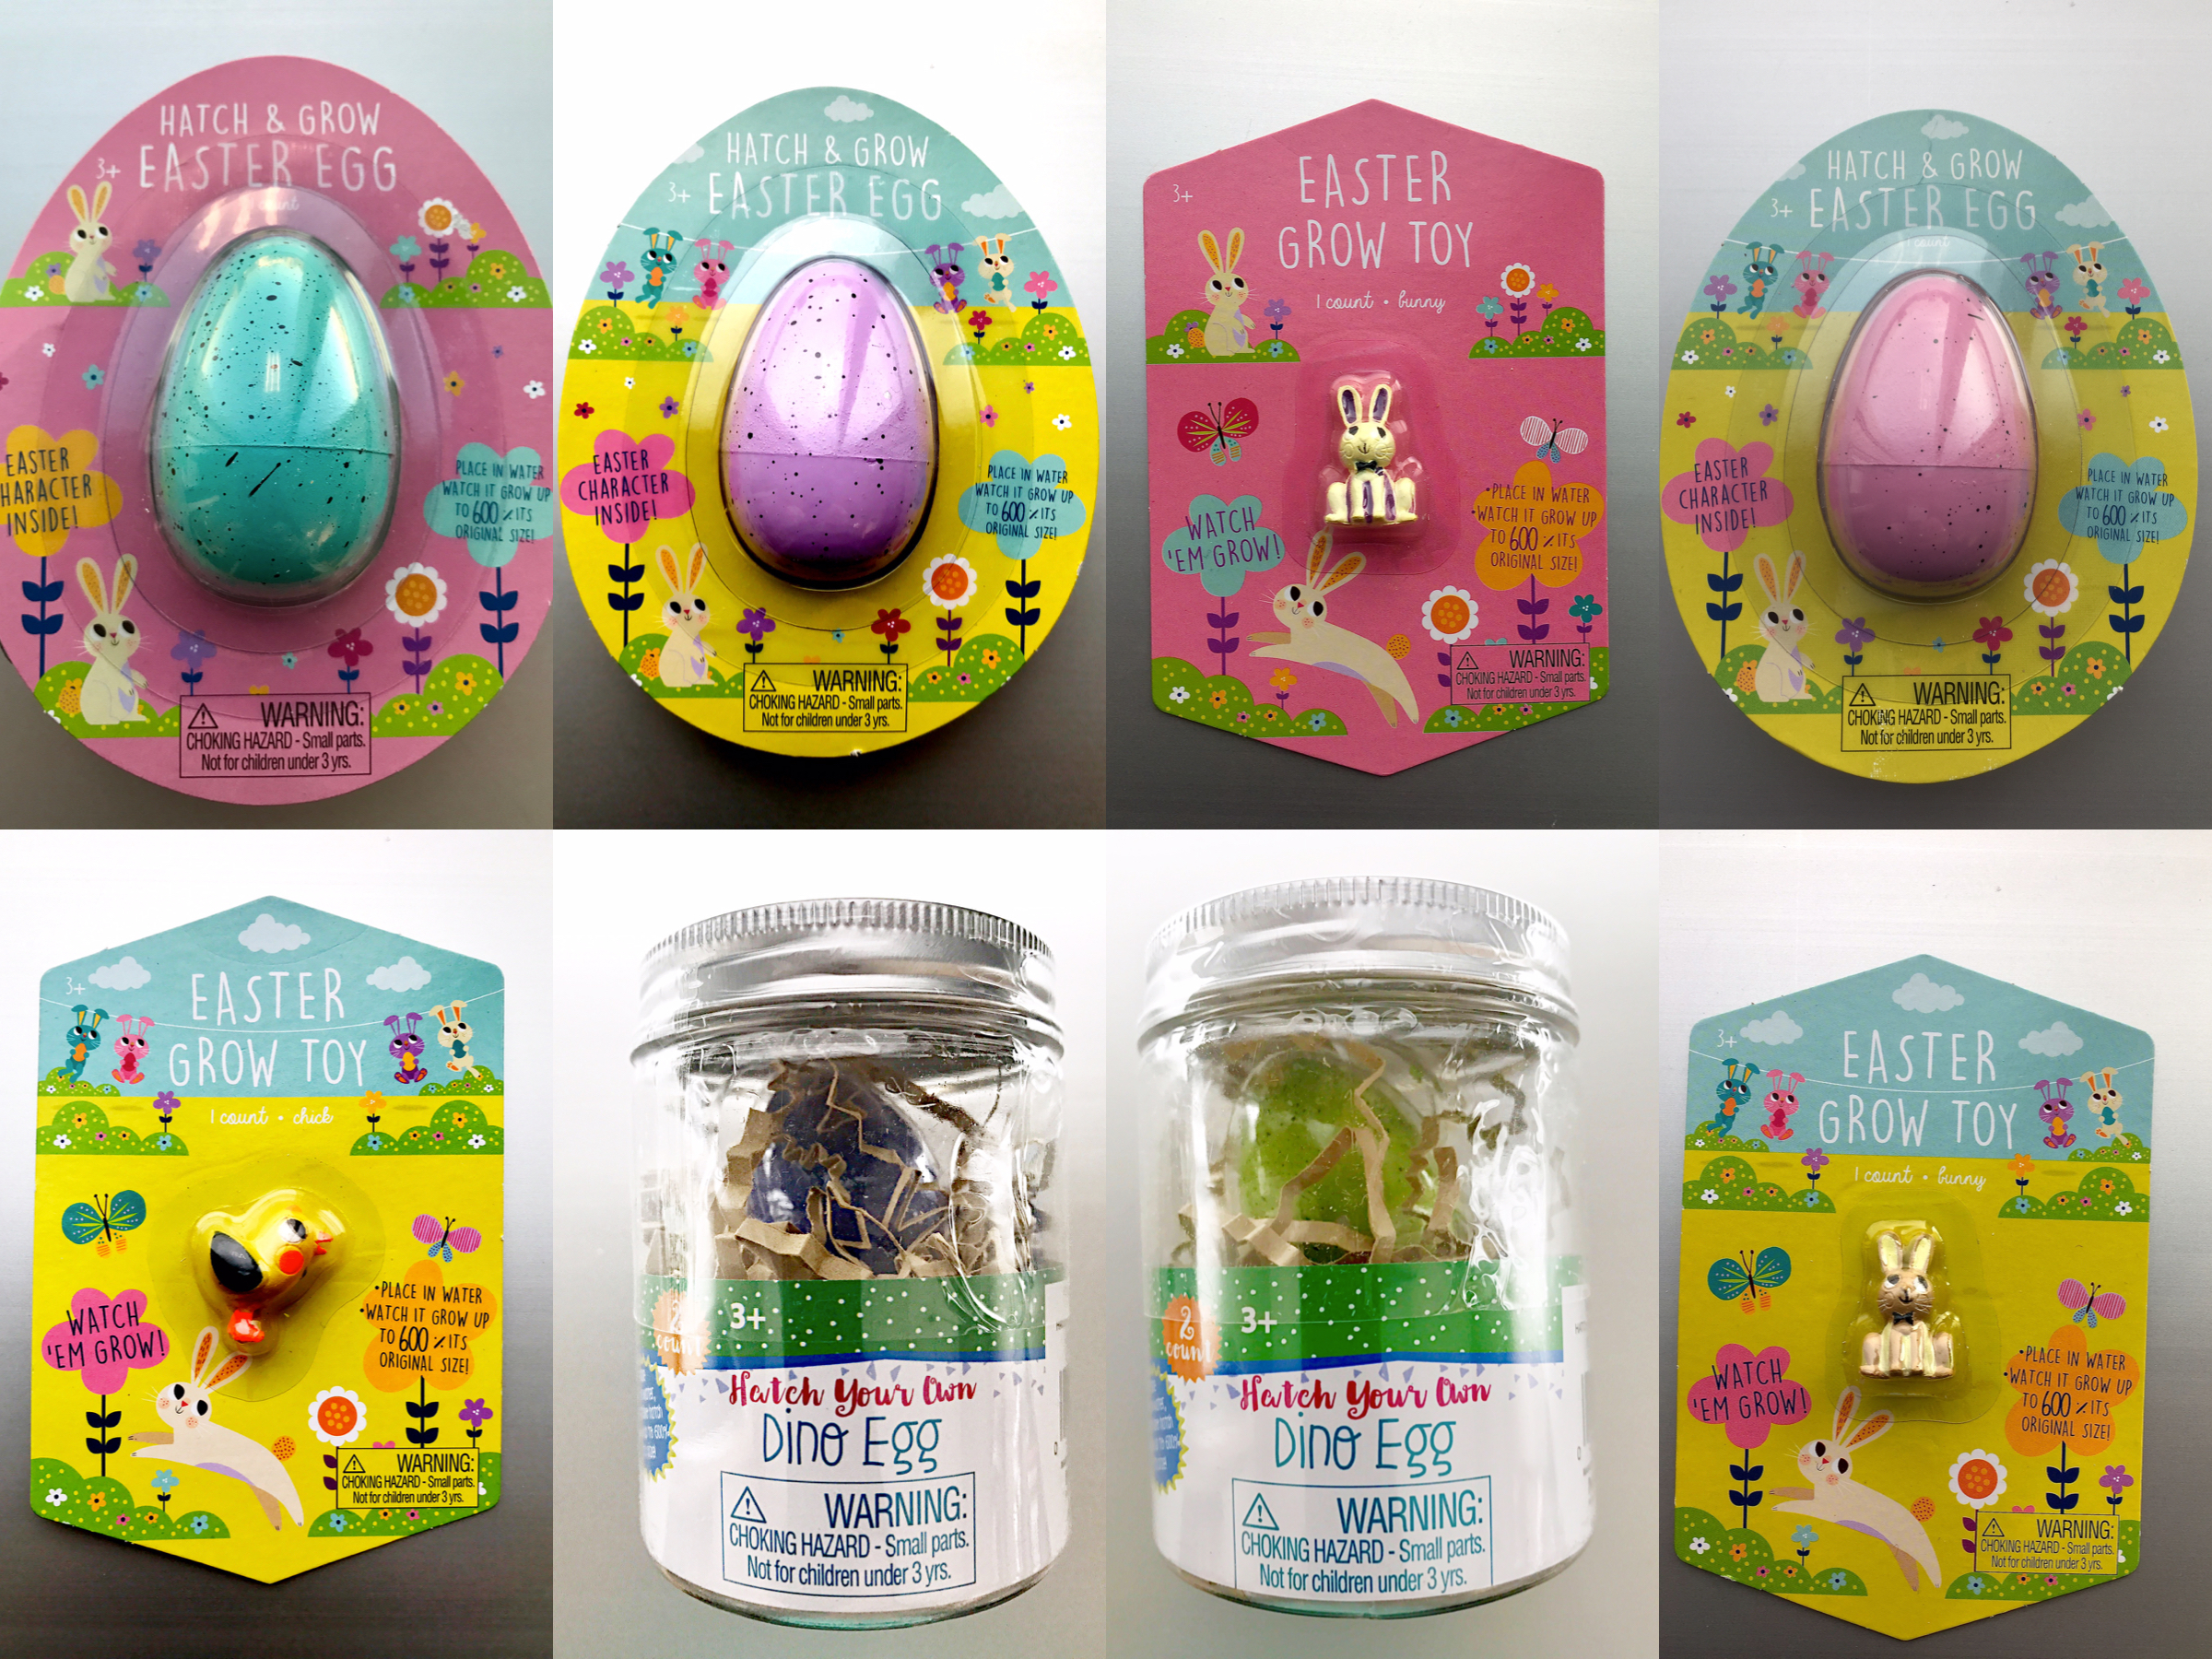 Recalled Target Easter Grow Toys Growing Your Baby